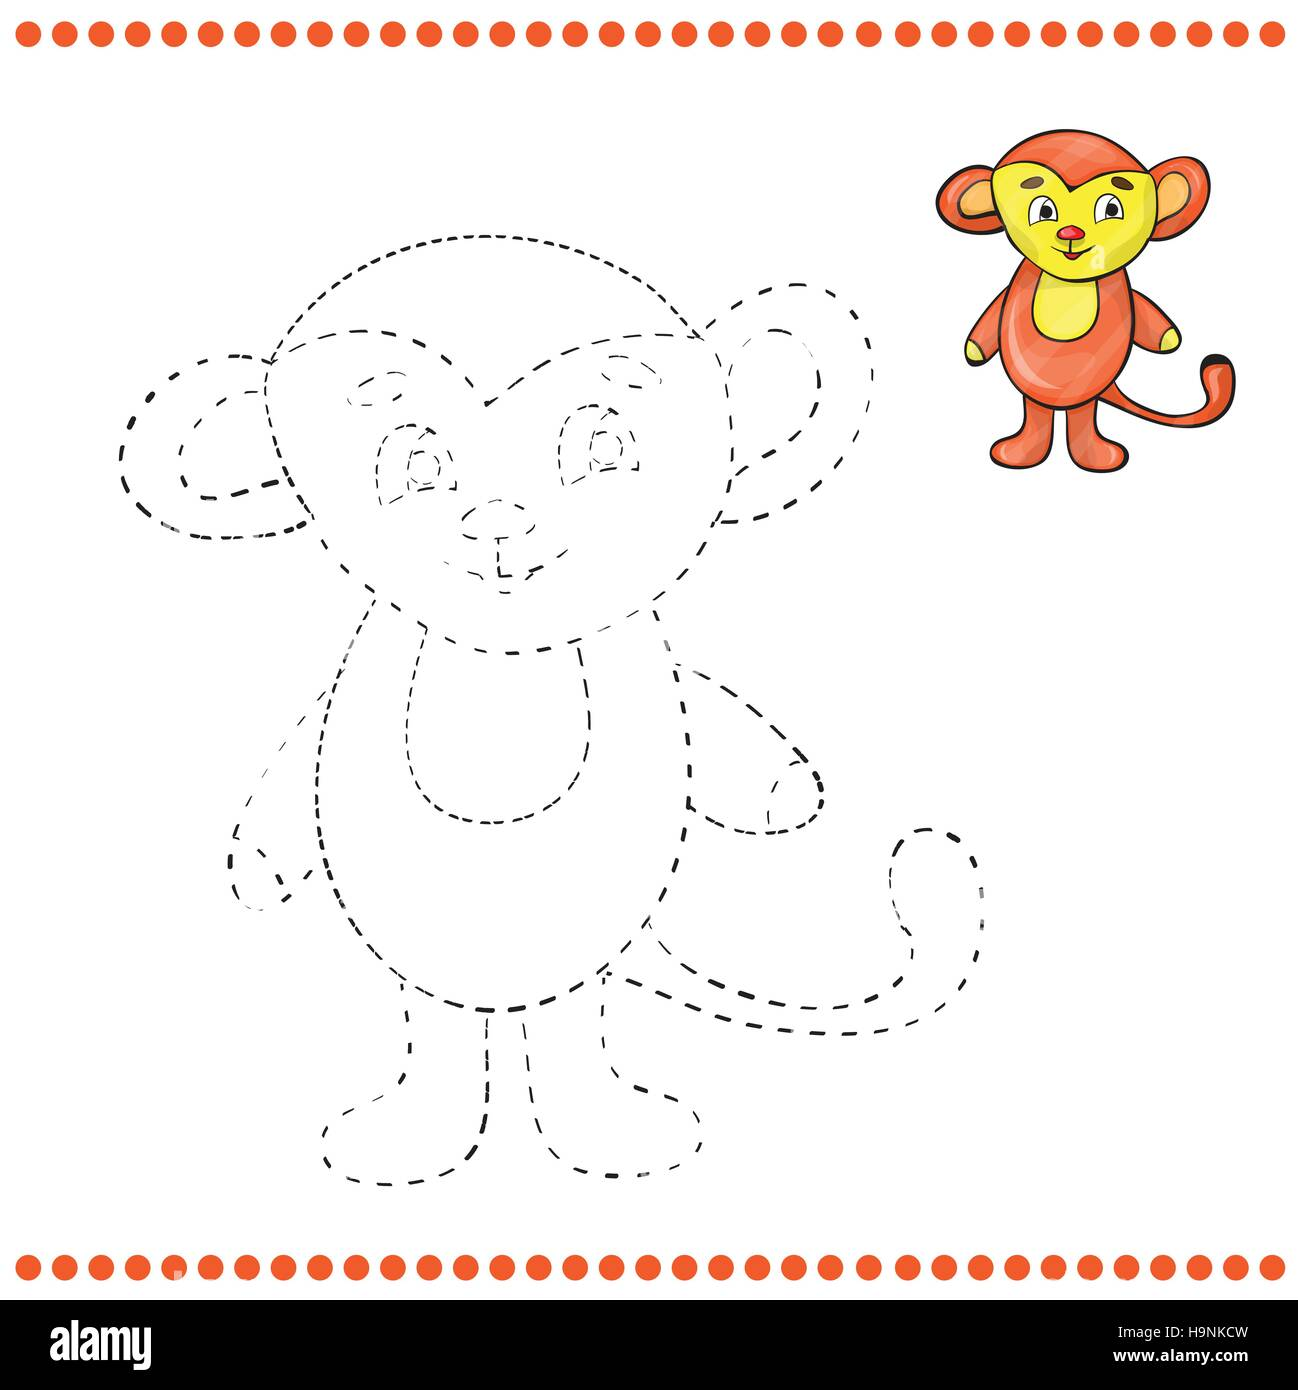 Connect the dots and coloring page - monkey Stock Vector Art ...